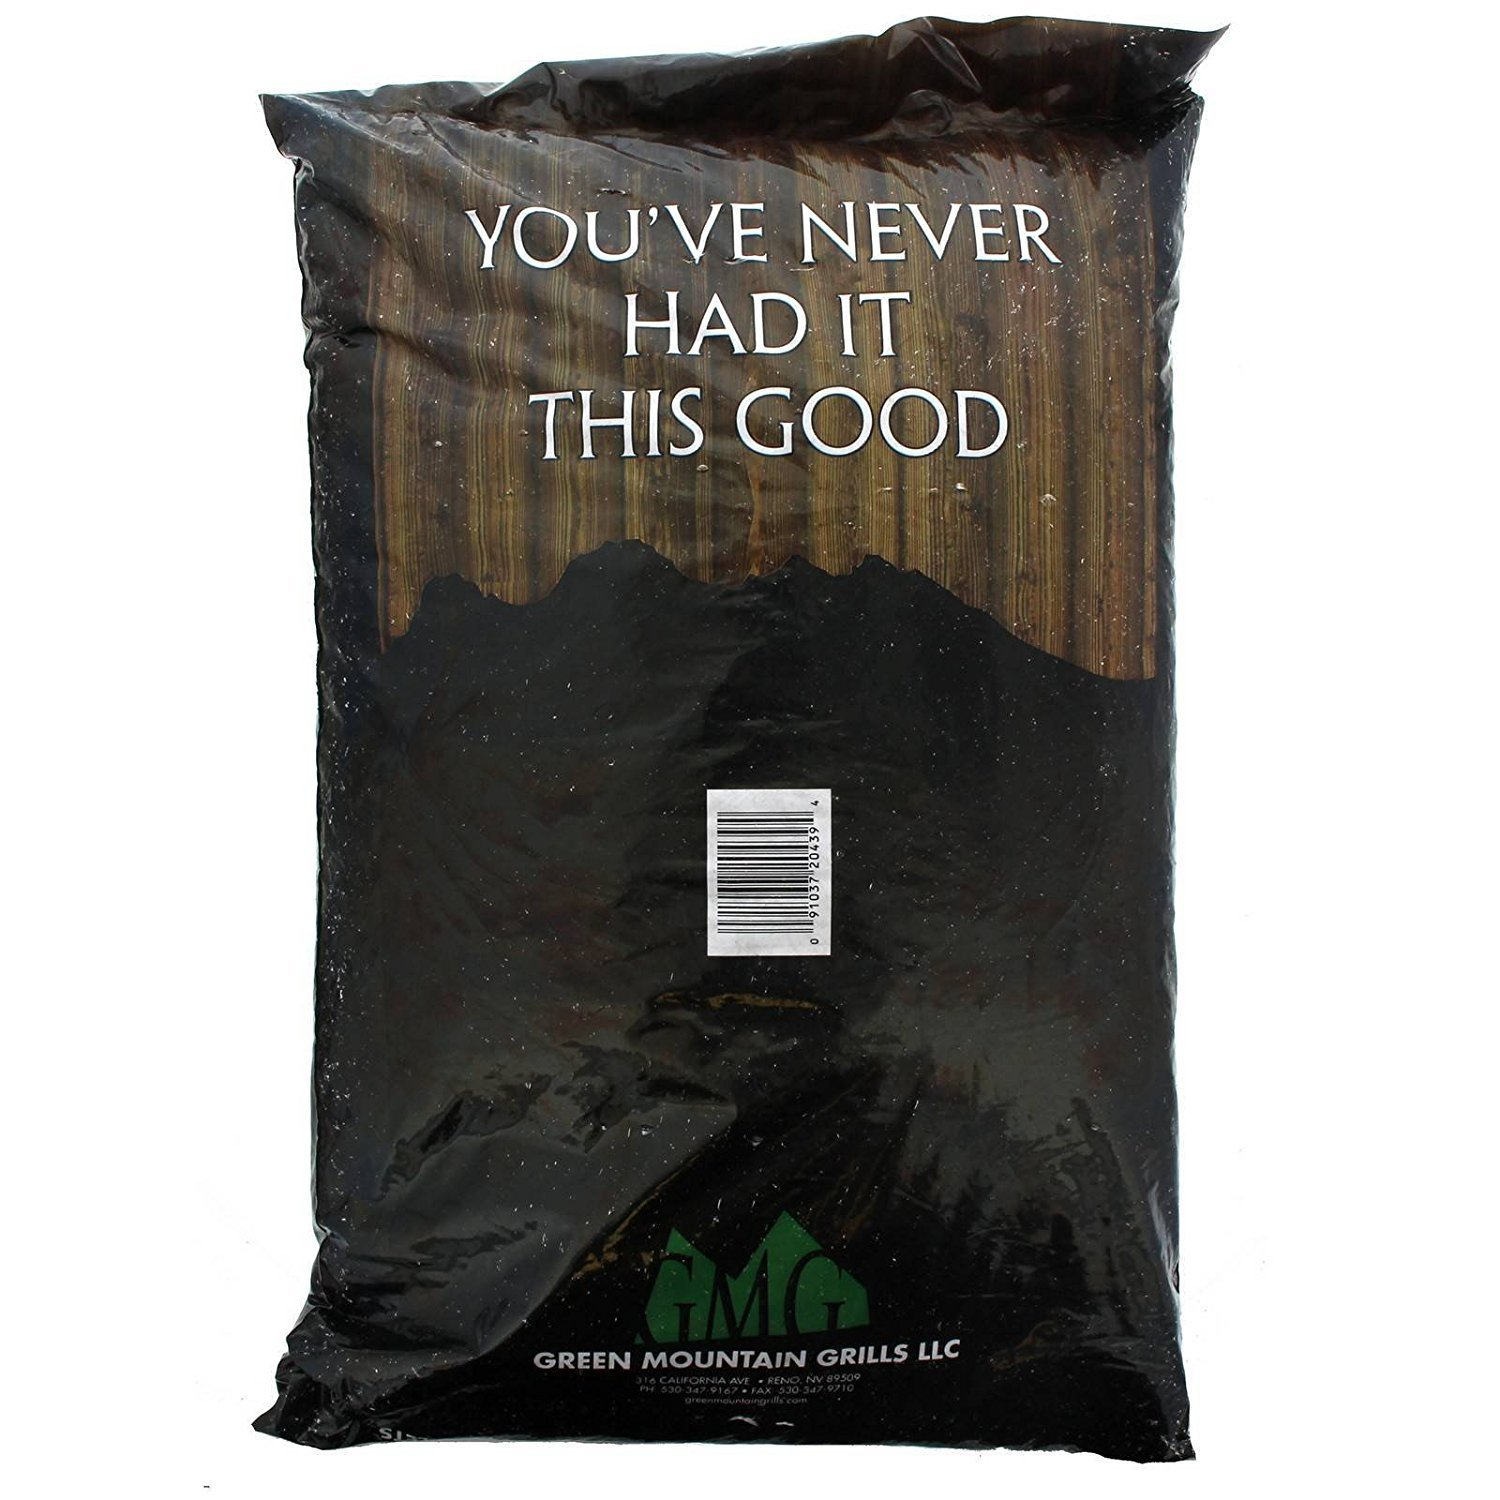 Green Mountain Grills Premium Gold, Texas, and Fruitwood Hardwood Grill Pellets by Green Mountain (Image #5)